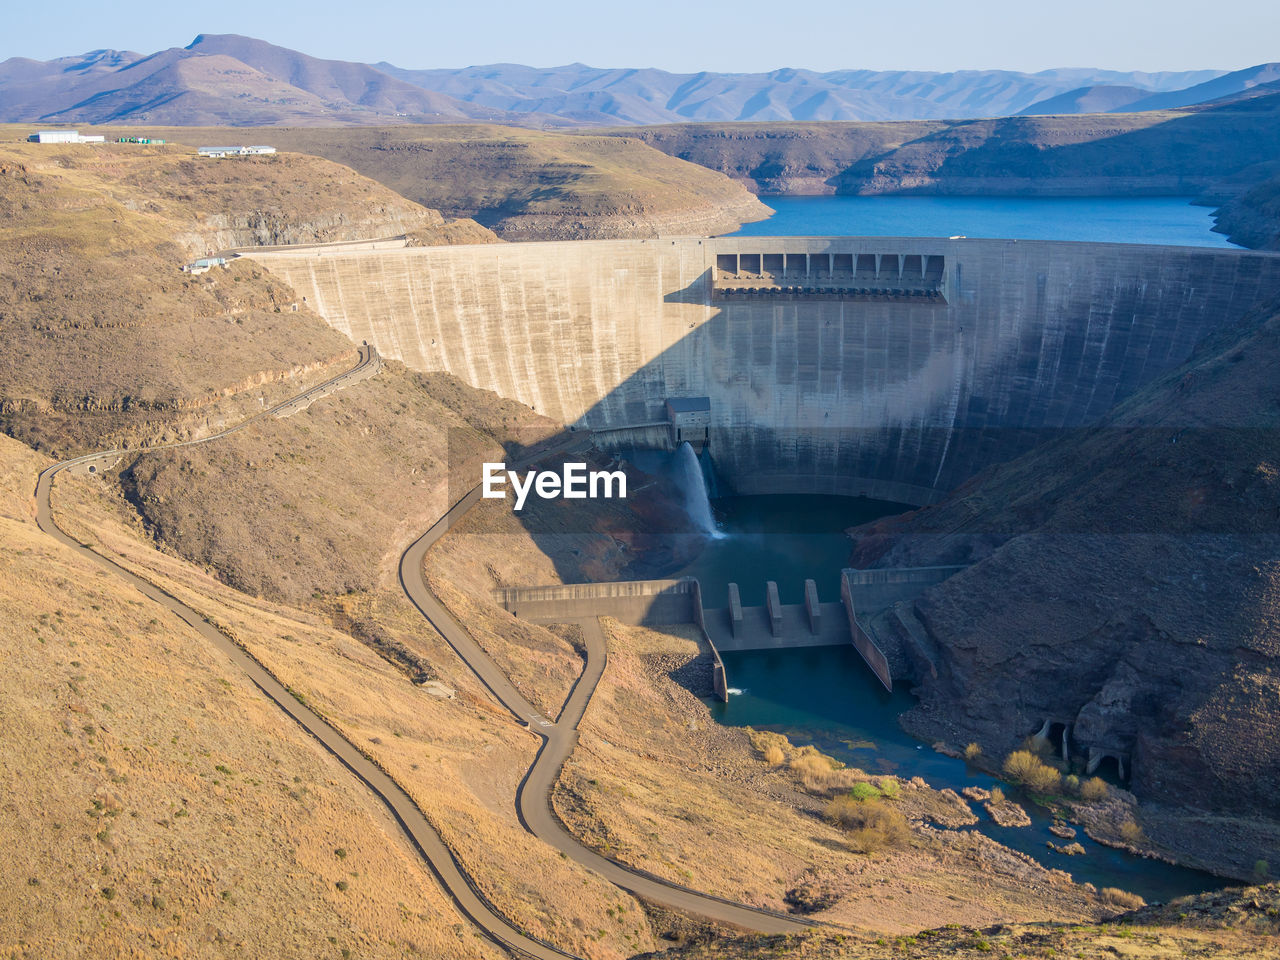 water, hydroelectric power, scenics - nature, environment, dam, built structure, fuel and power generation, architecture, high angle view, day, renewable energy, no people, mountain, nature, landscape, environmental conservation, river, transportation, beauty in nature, outdoors